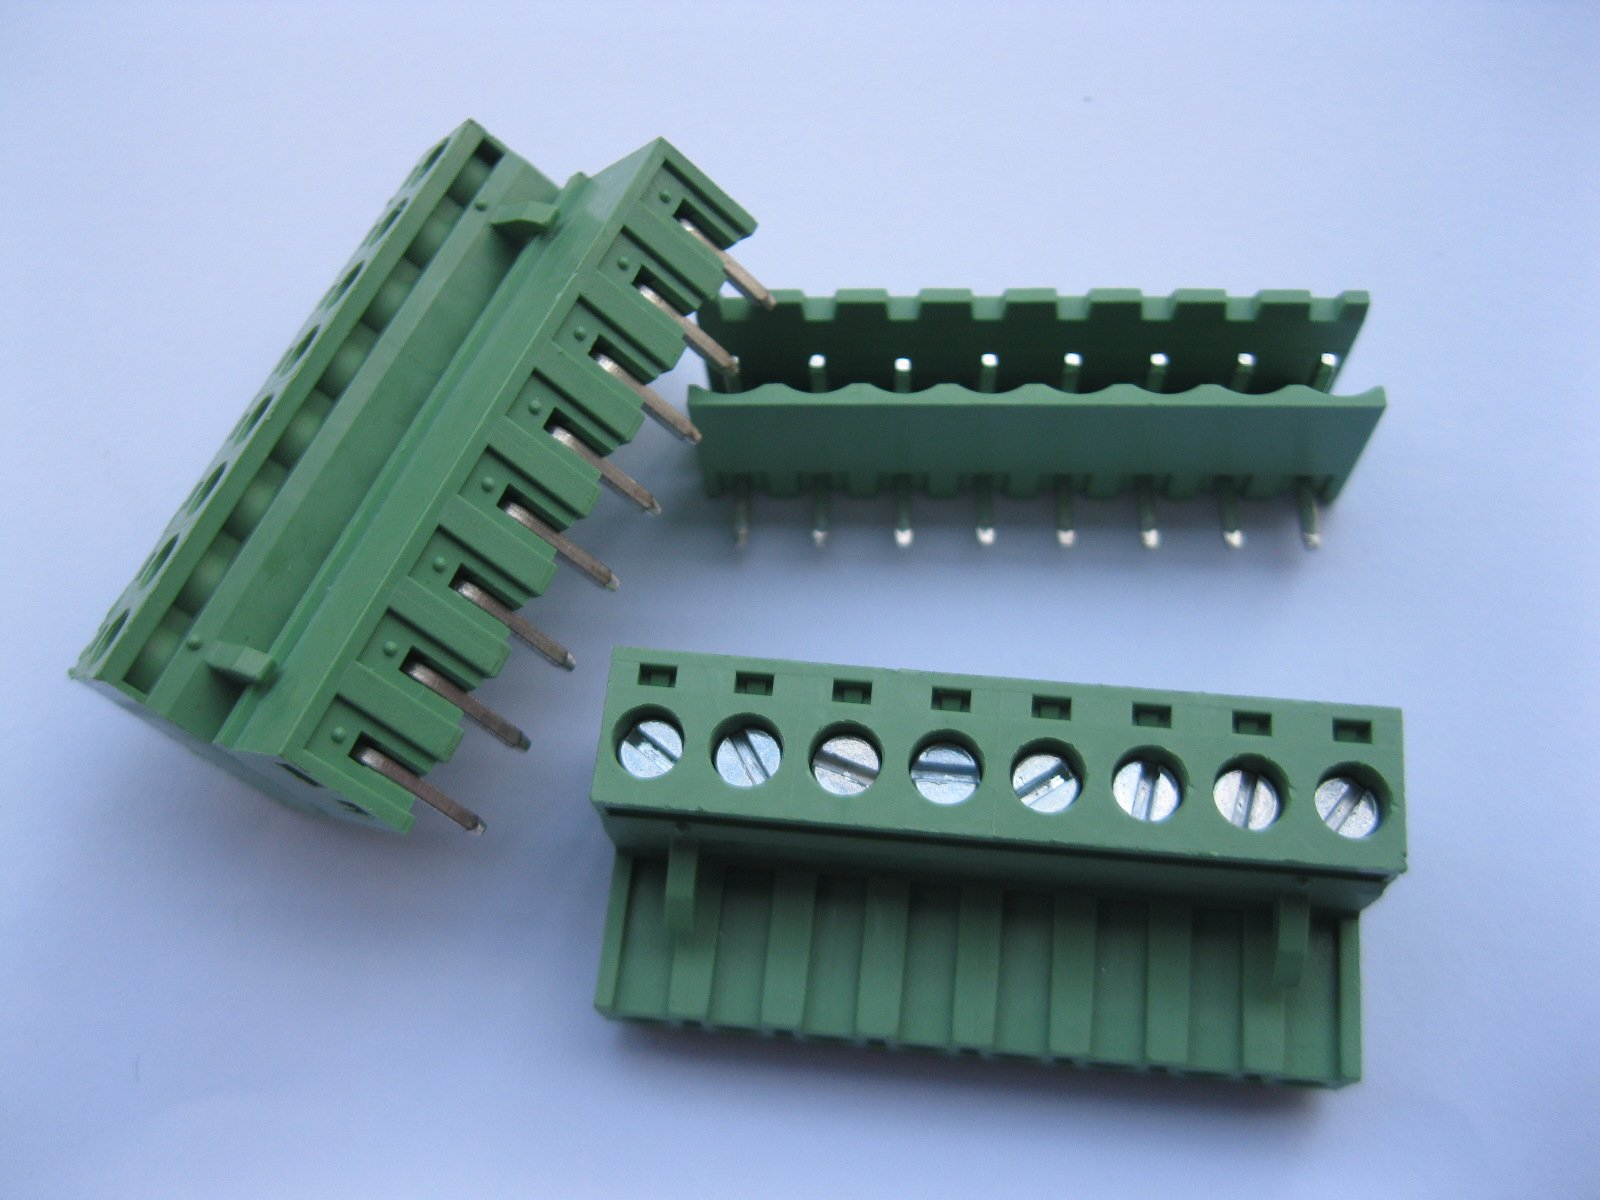 10 Pcs Pitch 5.08mm Angle 8way/pin Screw Terminal Block Connector w/ Angle-pin Green Color Pluggable Type Skywalking by Skywalking